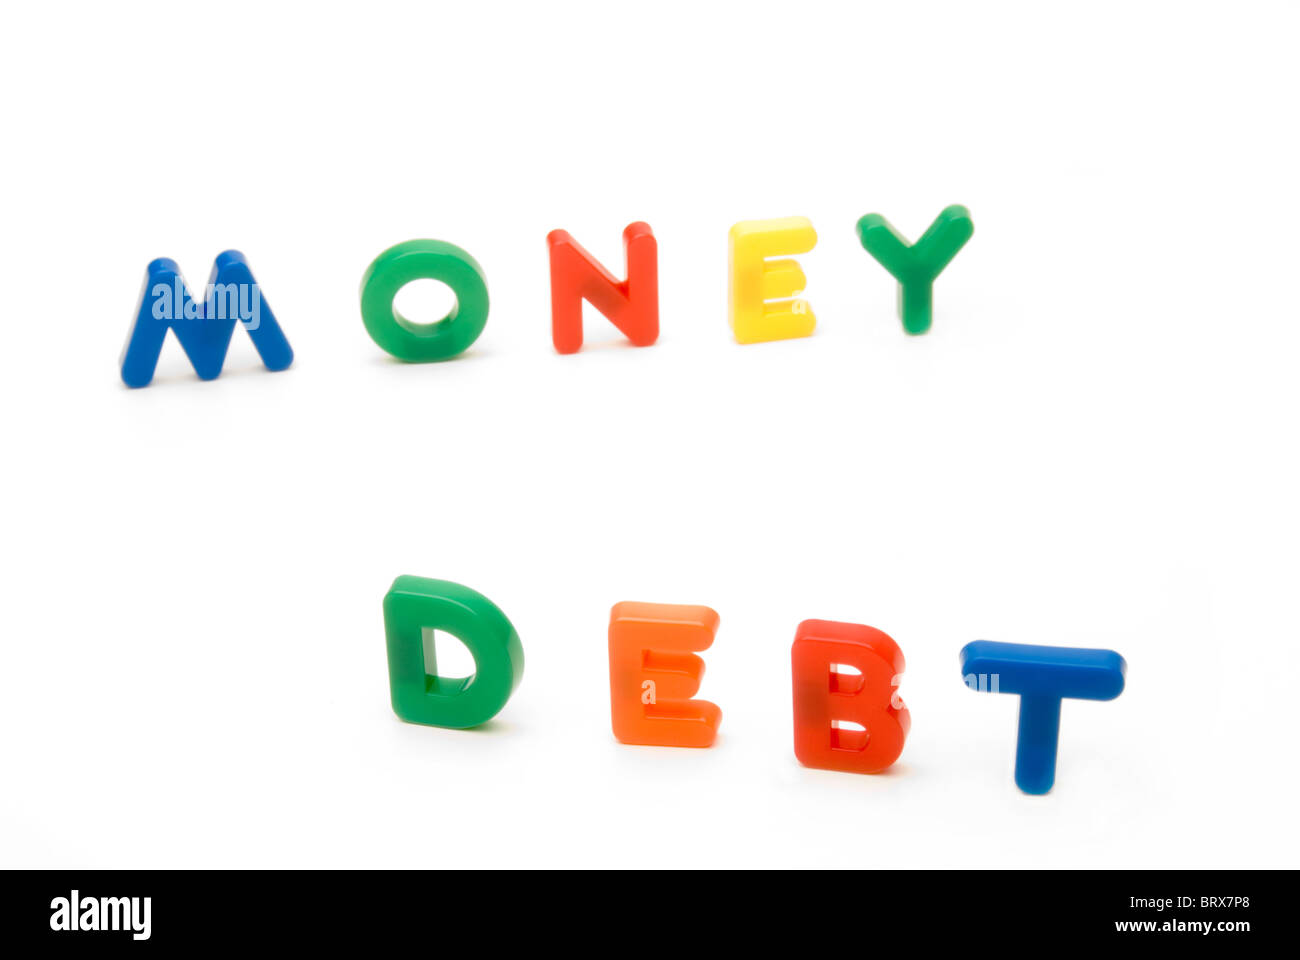 Conceptual image - Children's play letters spelling the words Money and Debt - Stock Image